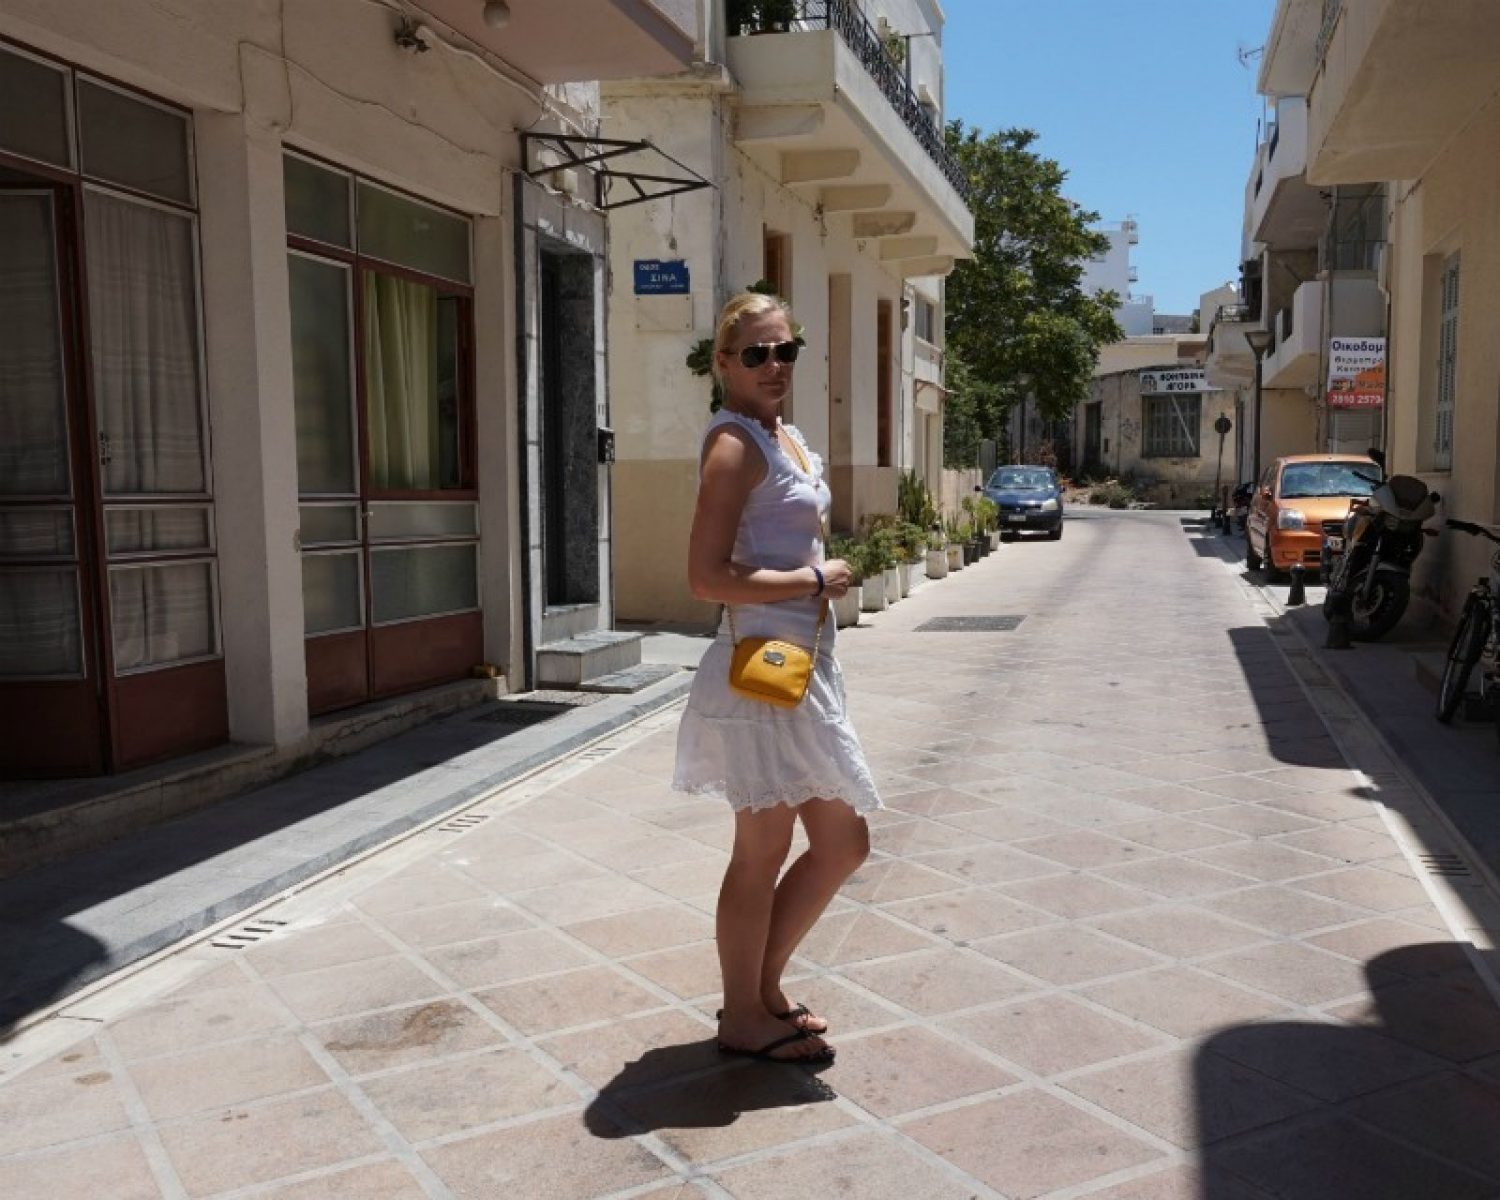 Summer holiday outfit #2